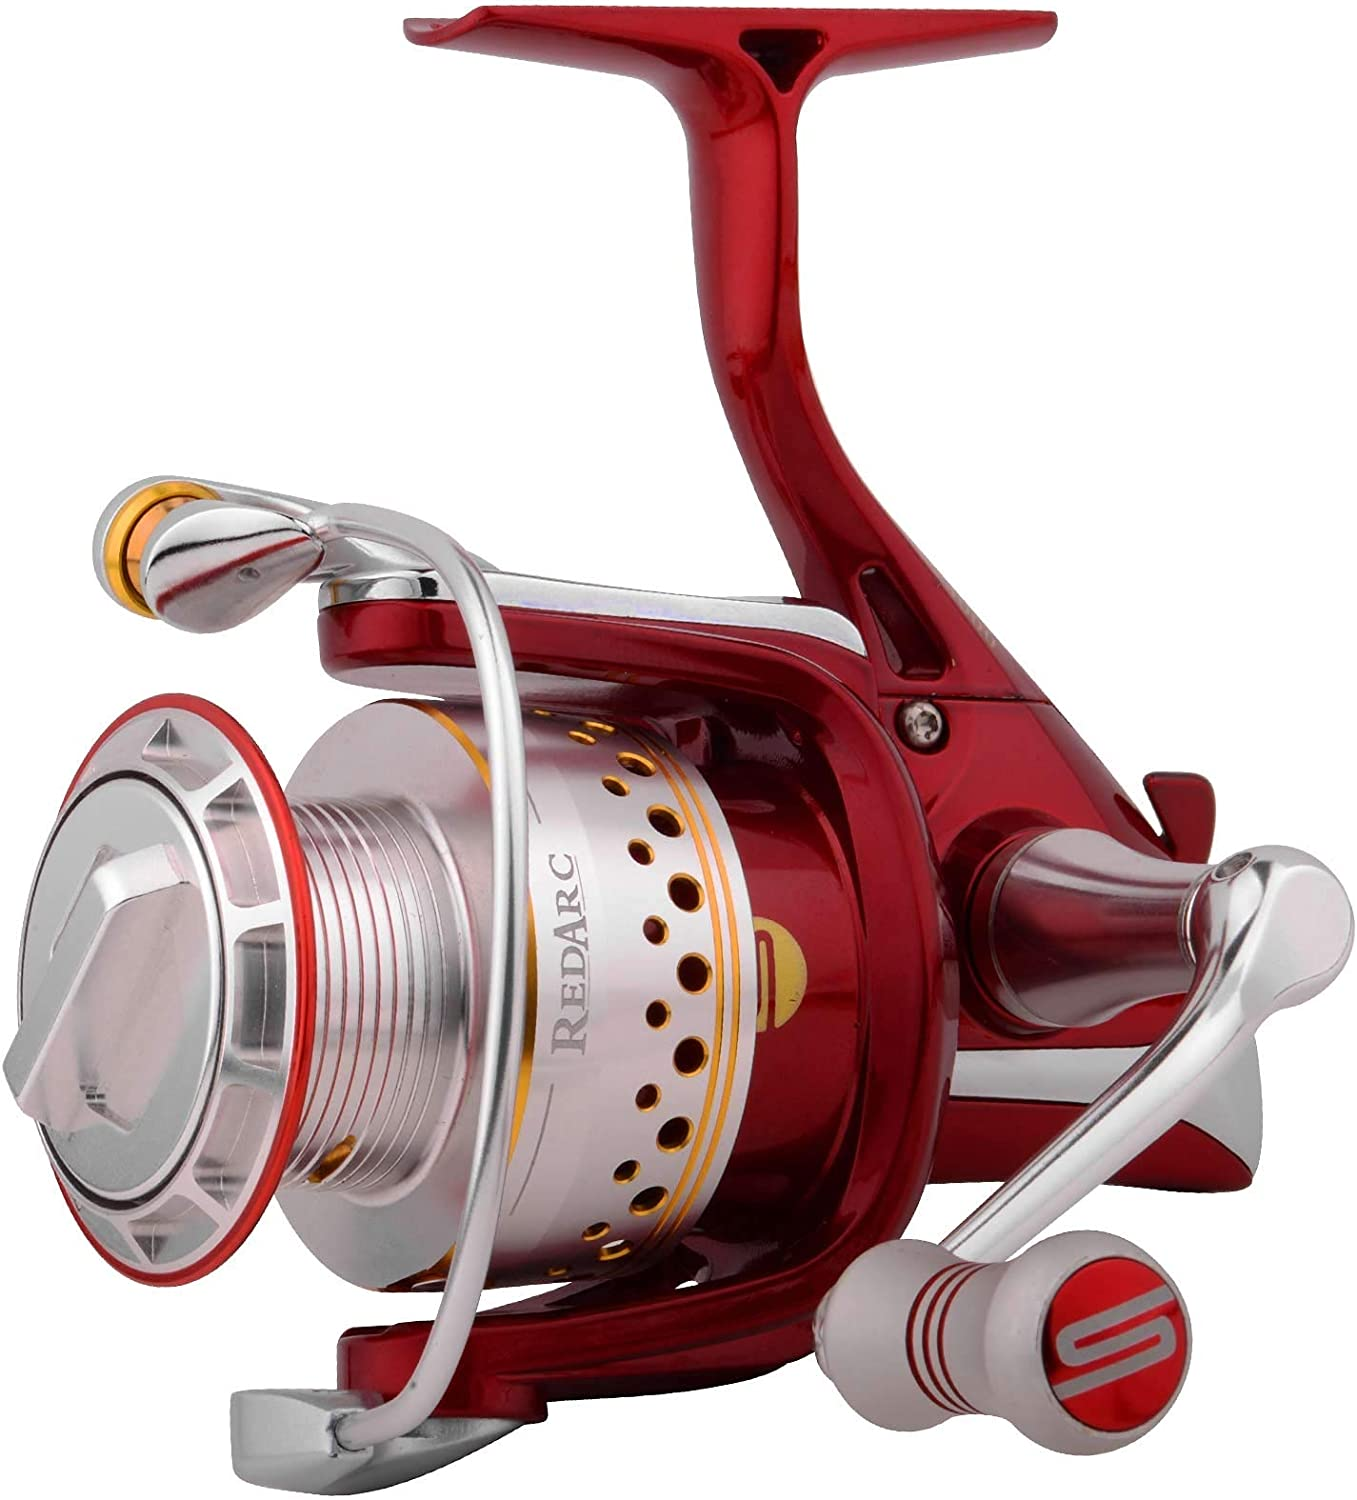 Spro Red Arc 1000 2000 3000 4000 New 2019